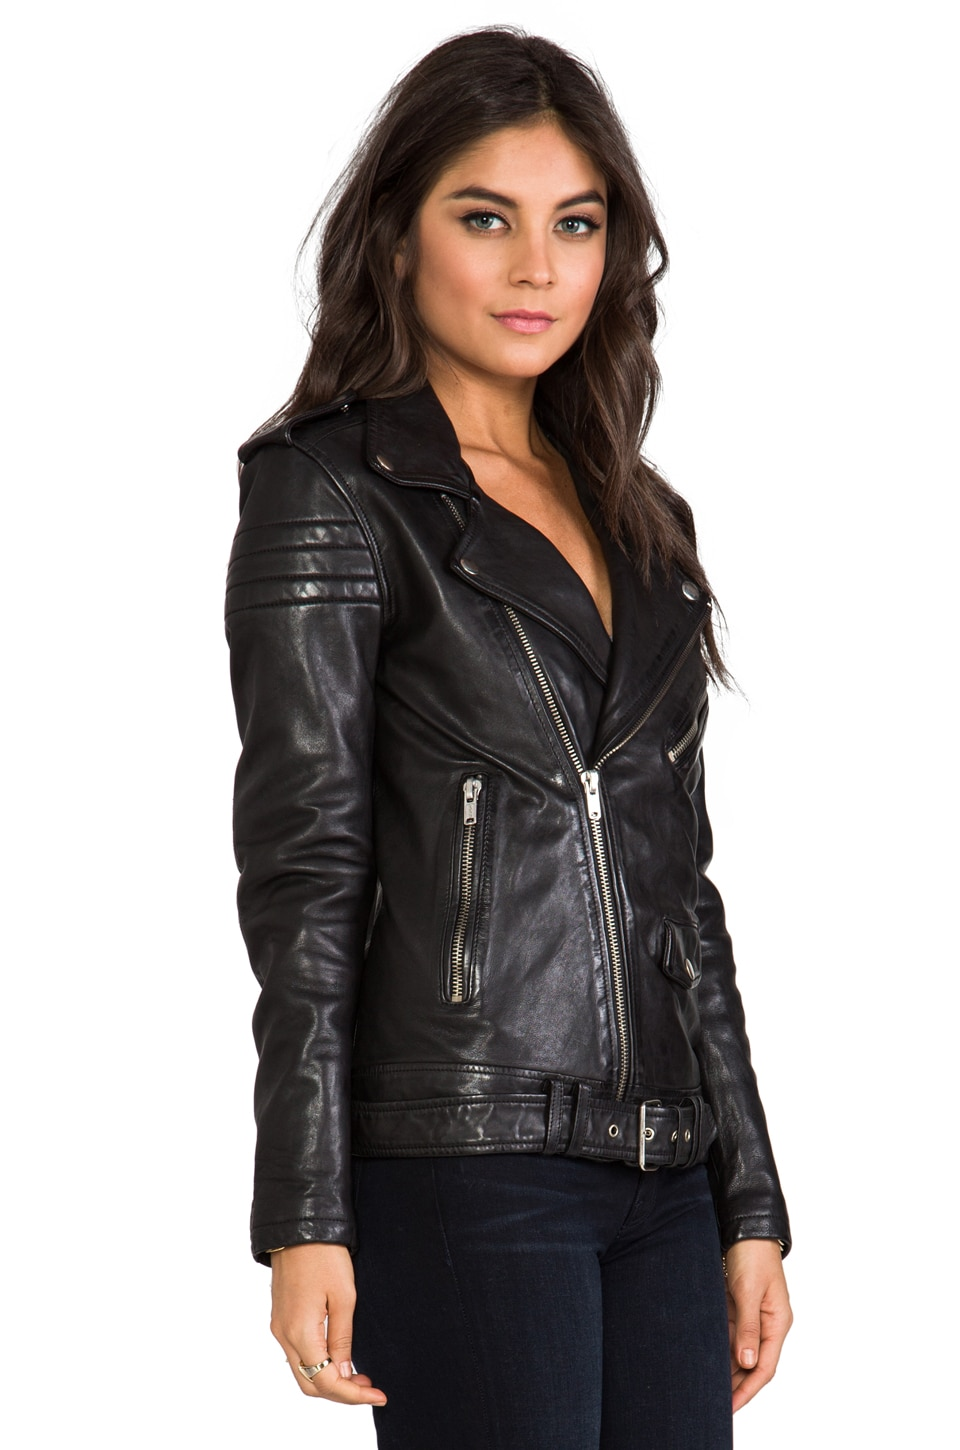 BLK DNM Leather Jacket 8 in Black